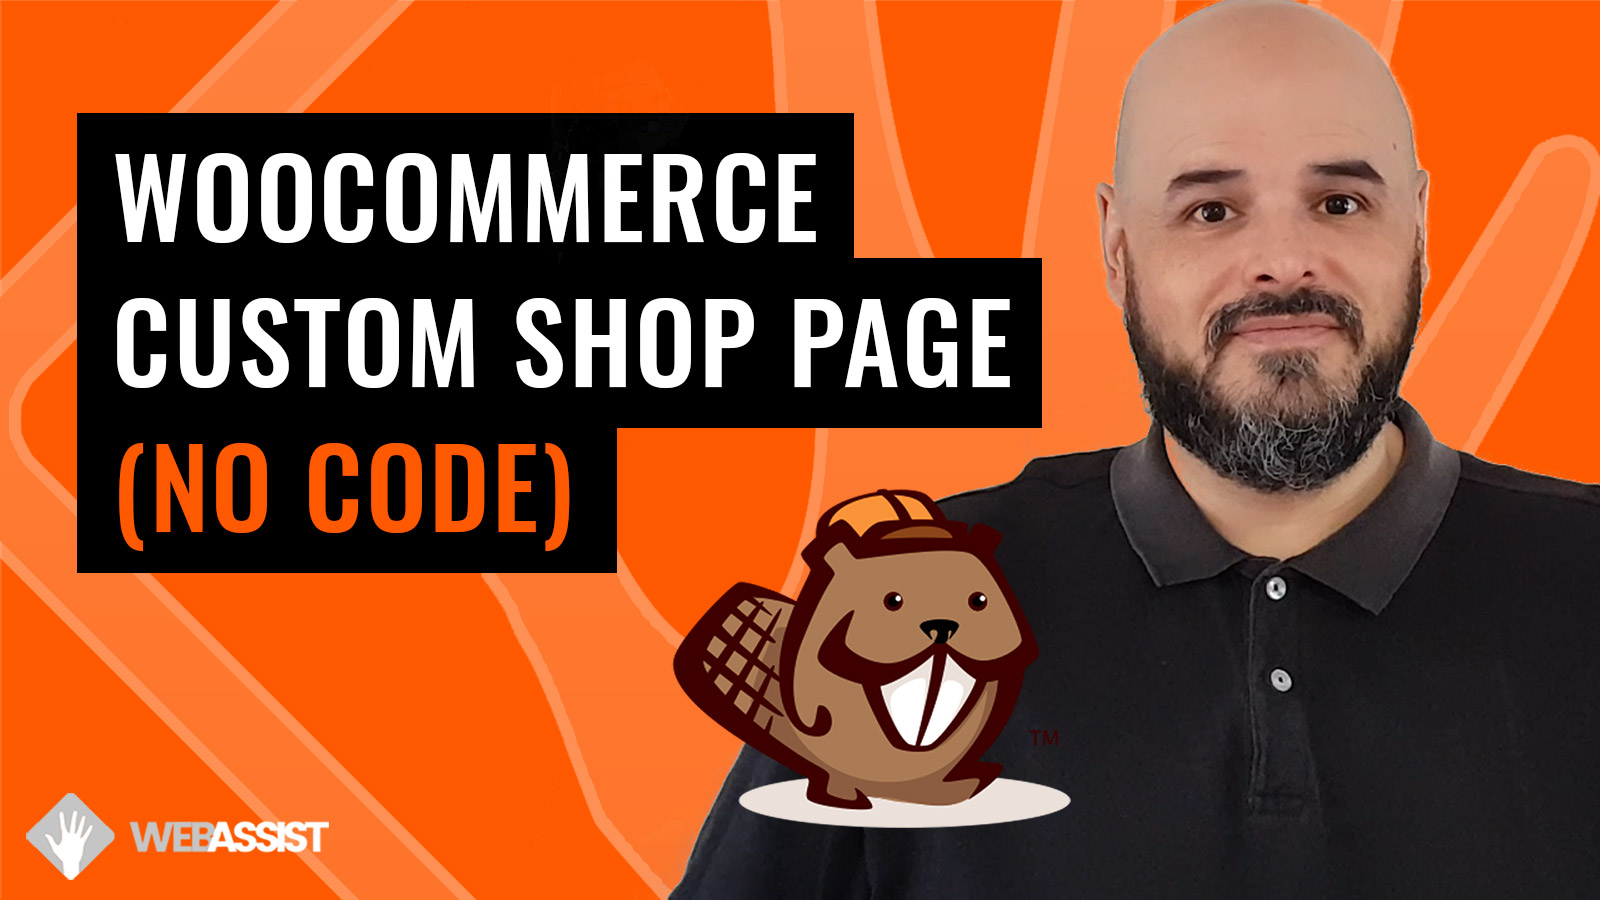 WooCommerce Custom Shop Page